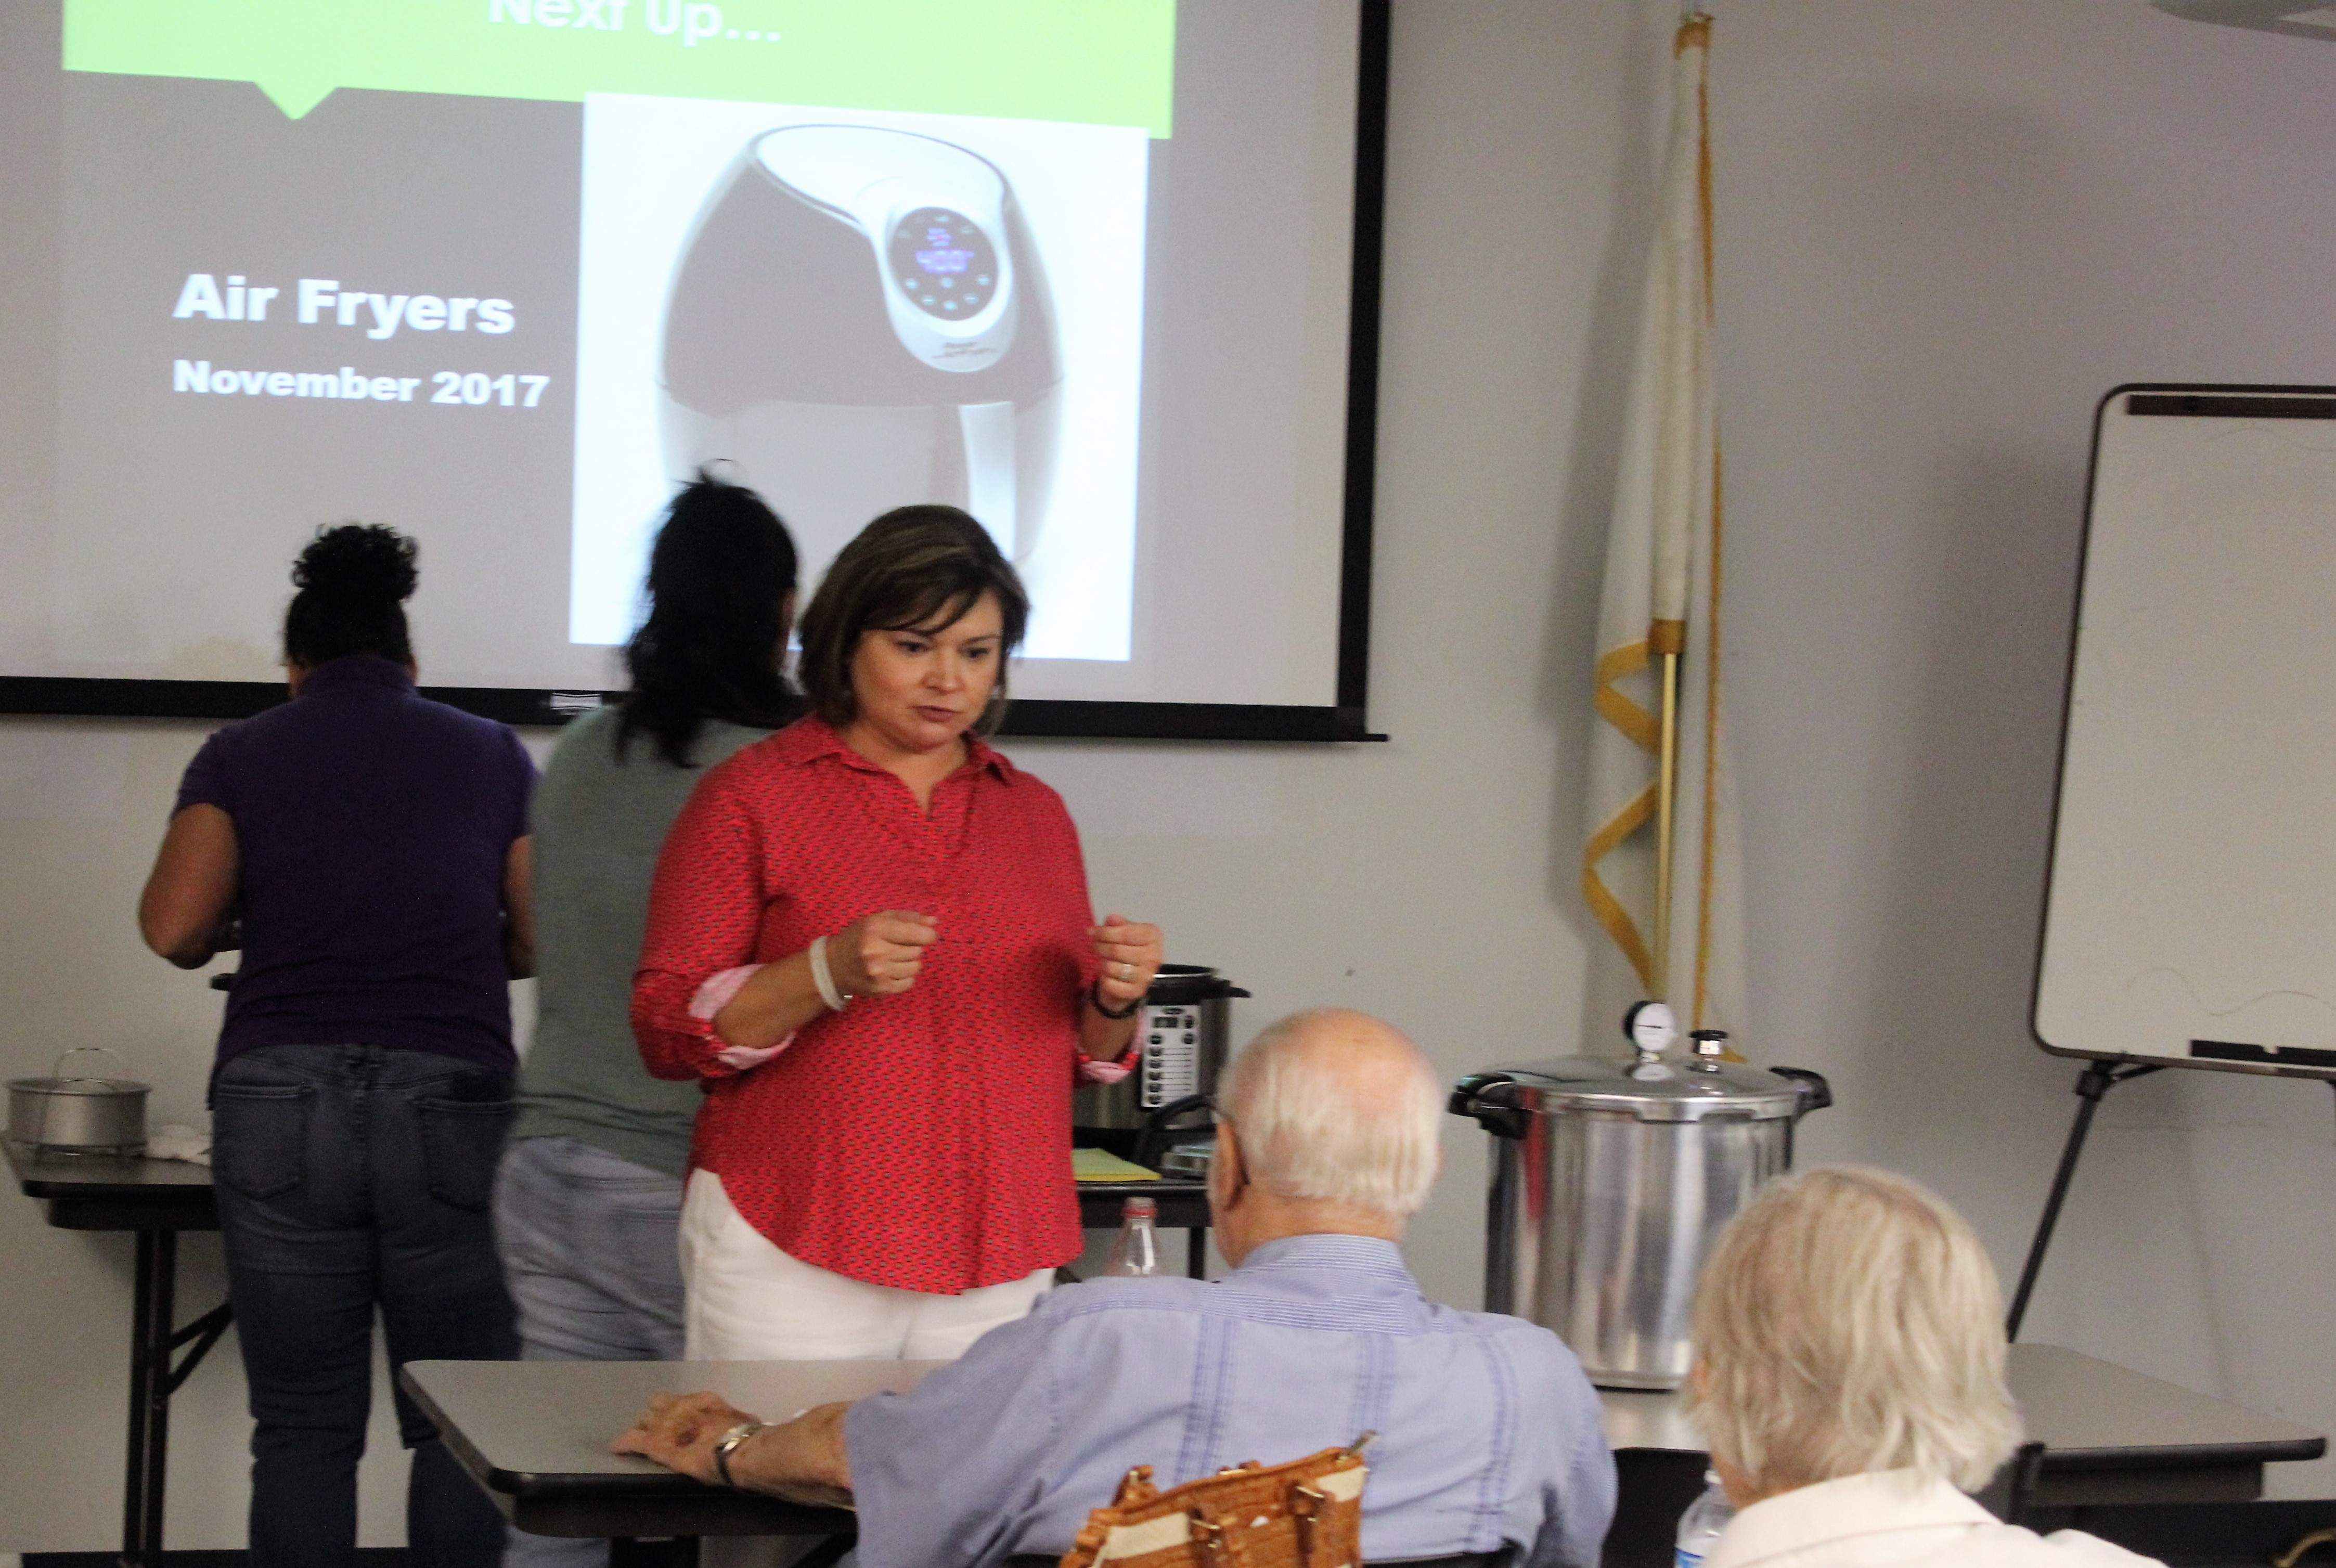 Upcoming workshop on Electric Air fryer